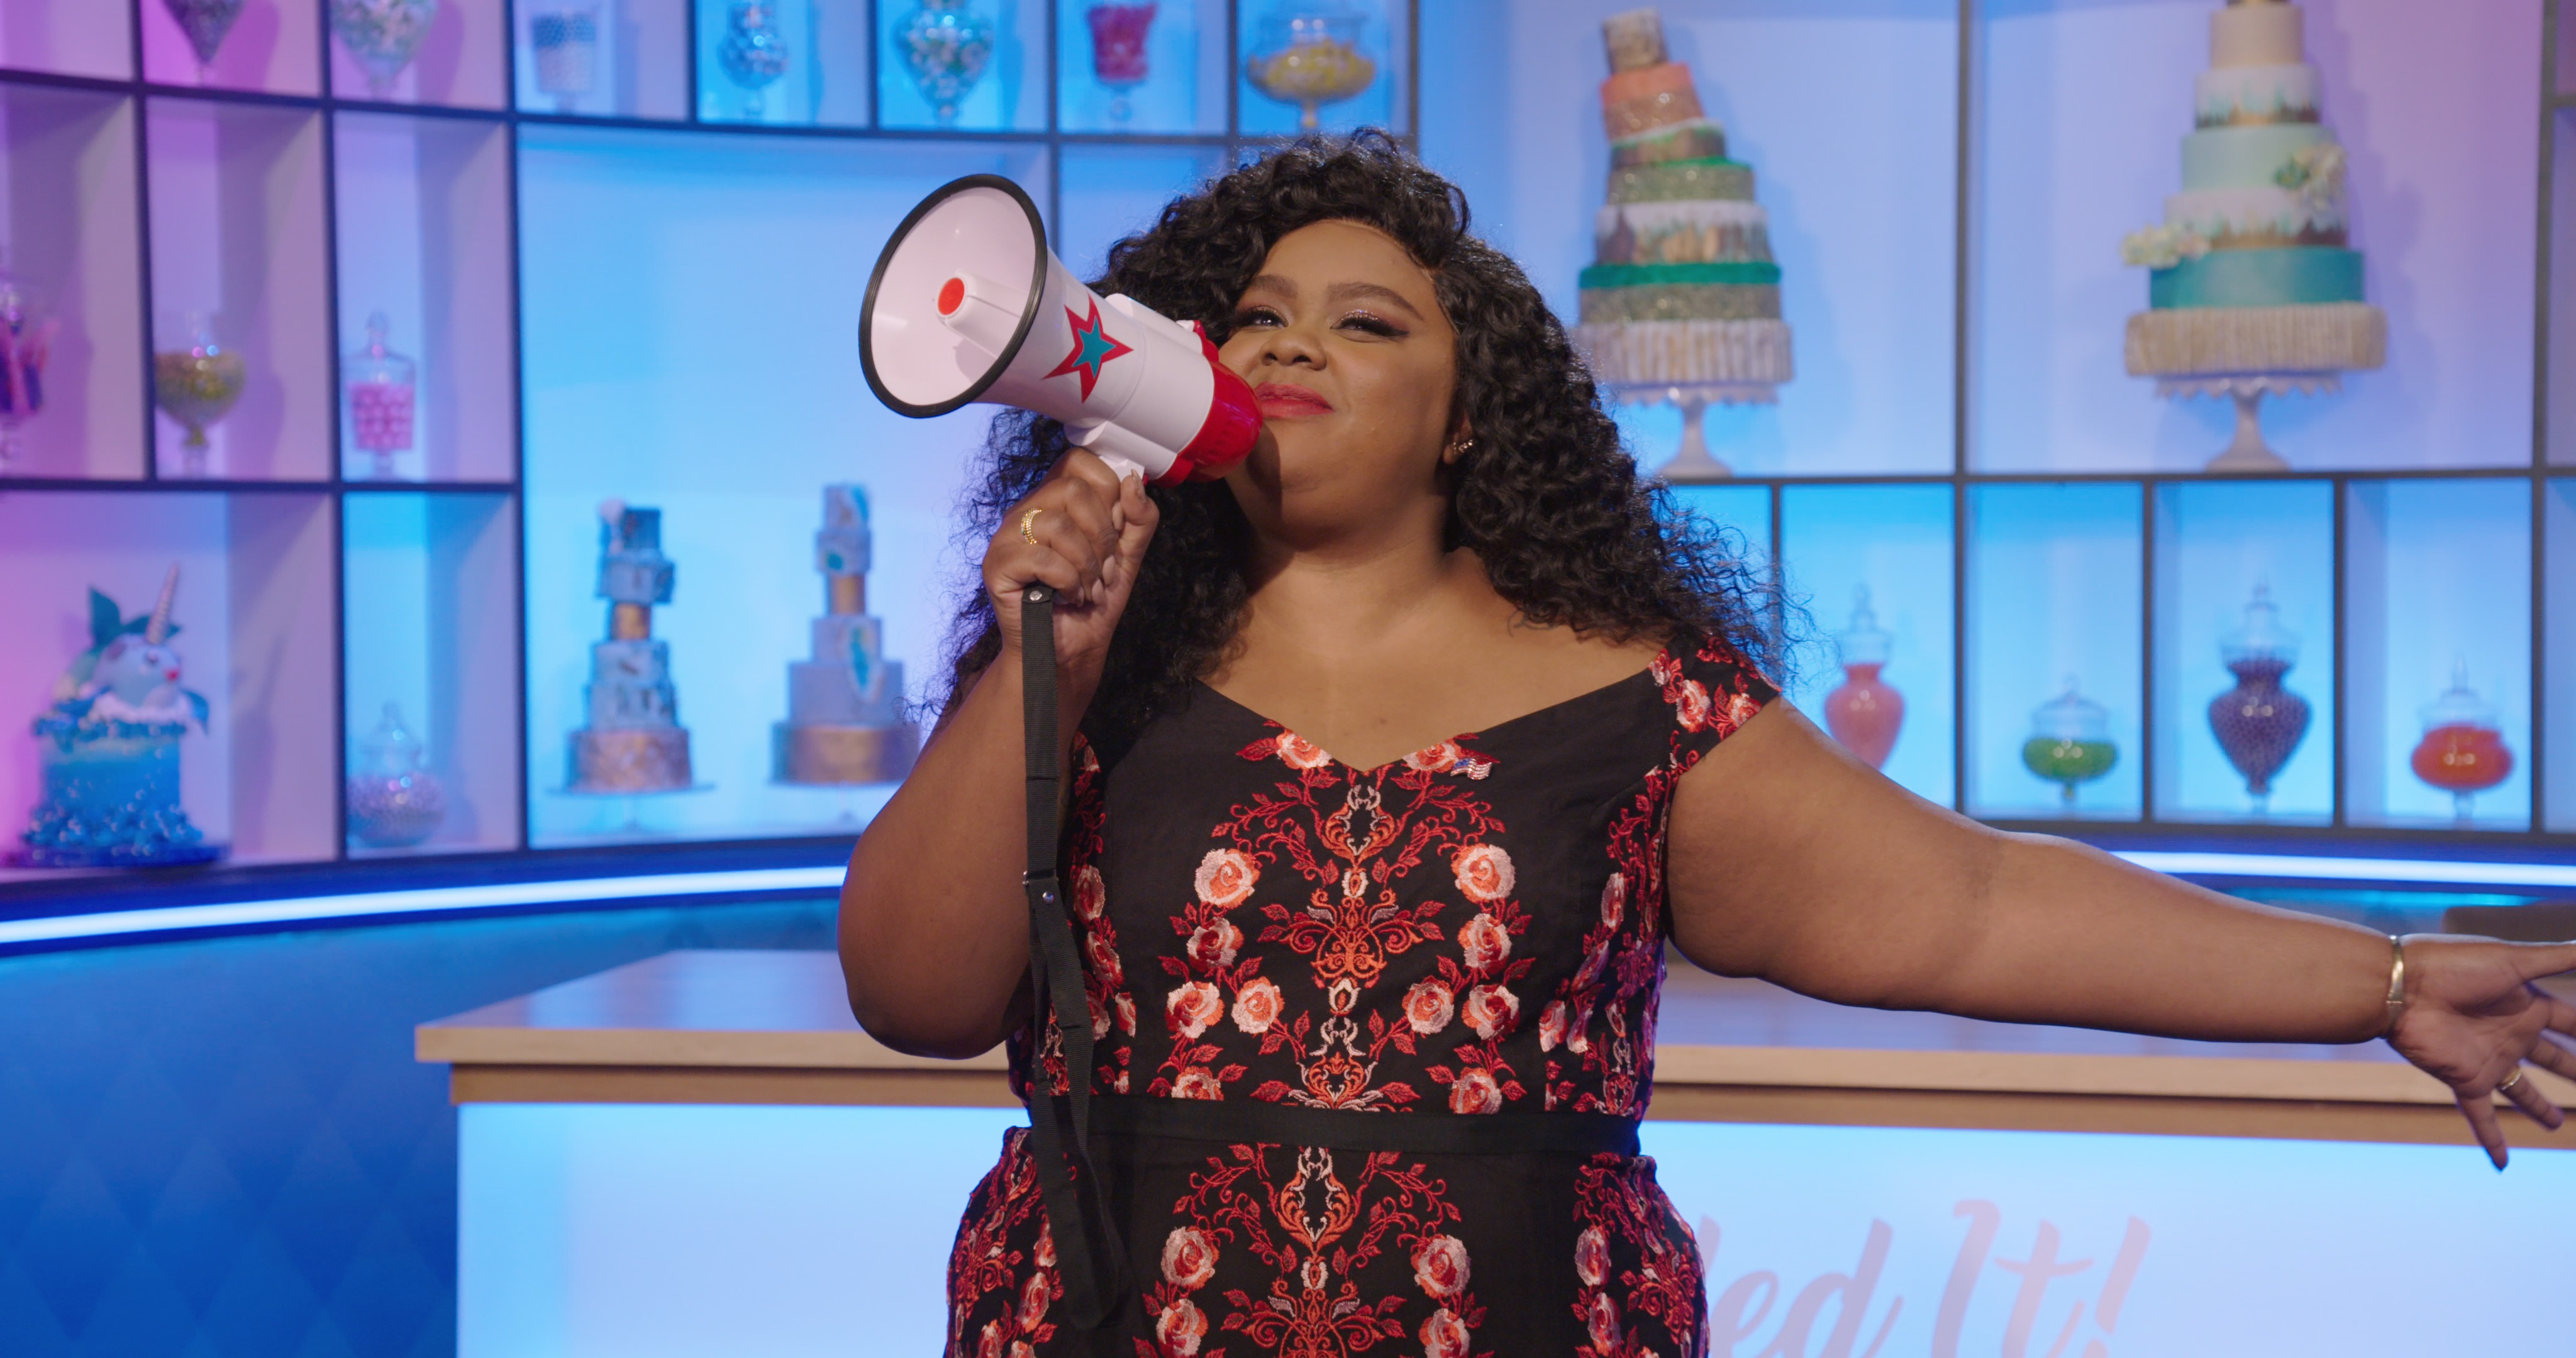 Nicole Byer holding a megaphone